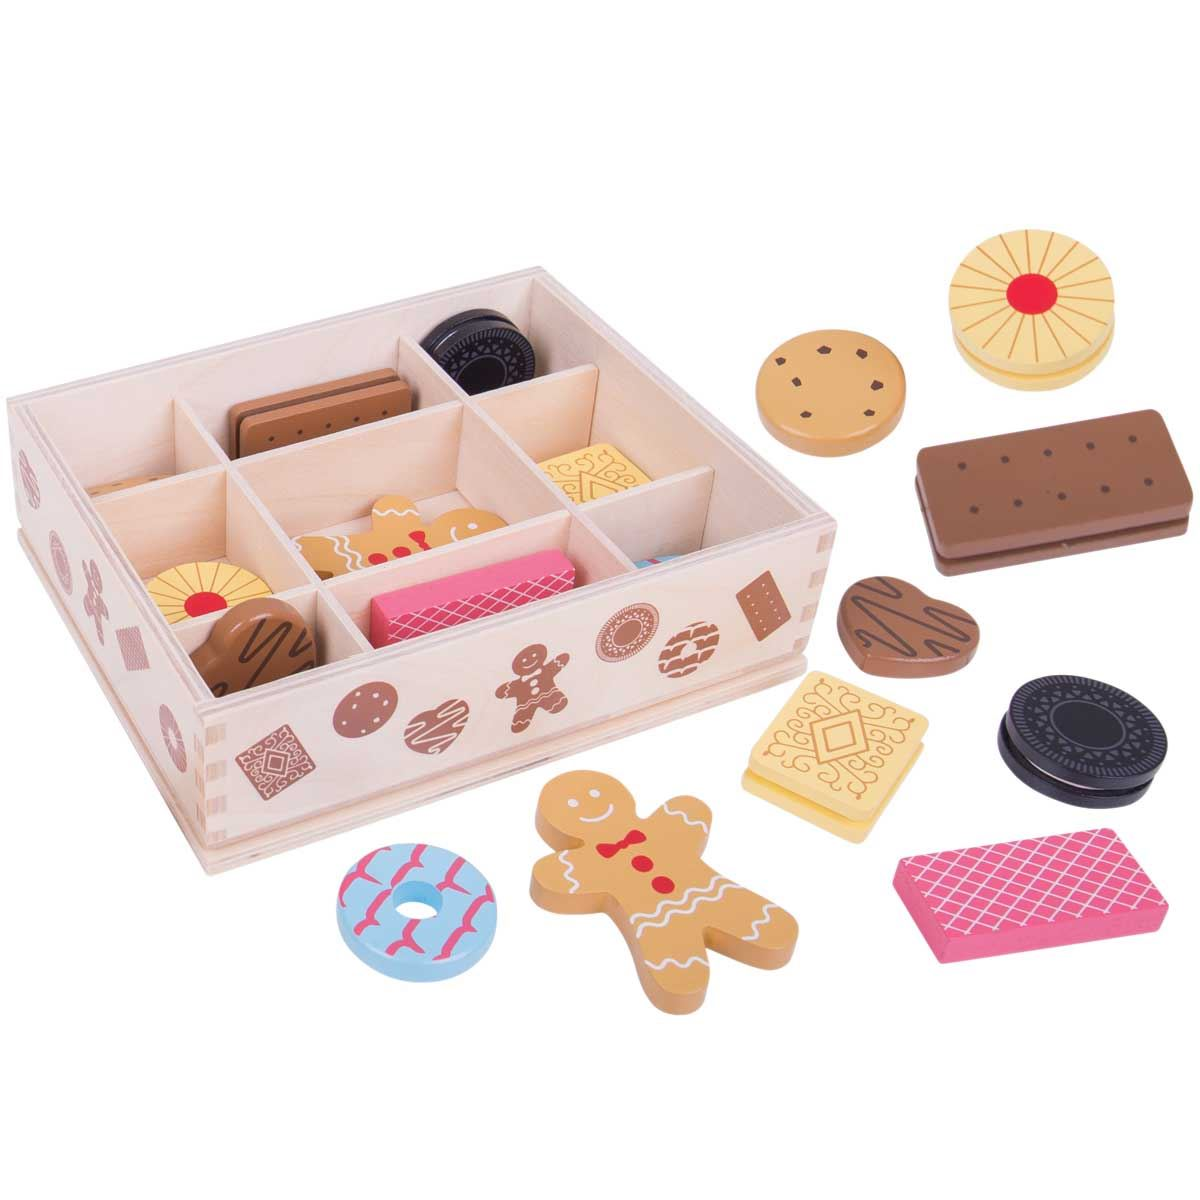 Box of biscuits bigjigs bj470 wooden play food for Cuisine wooden